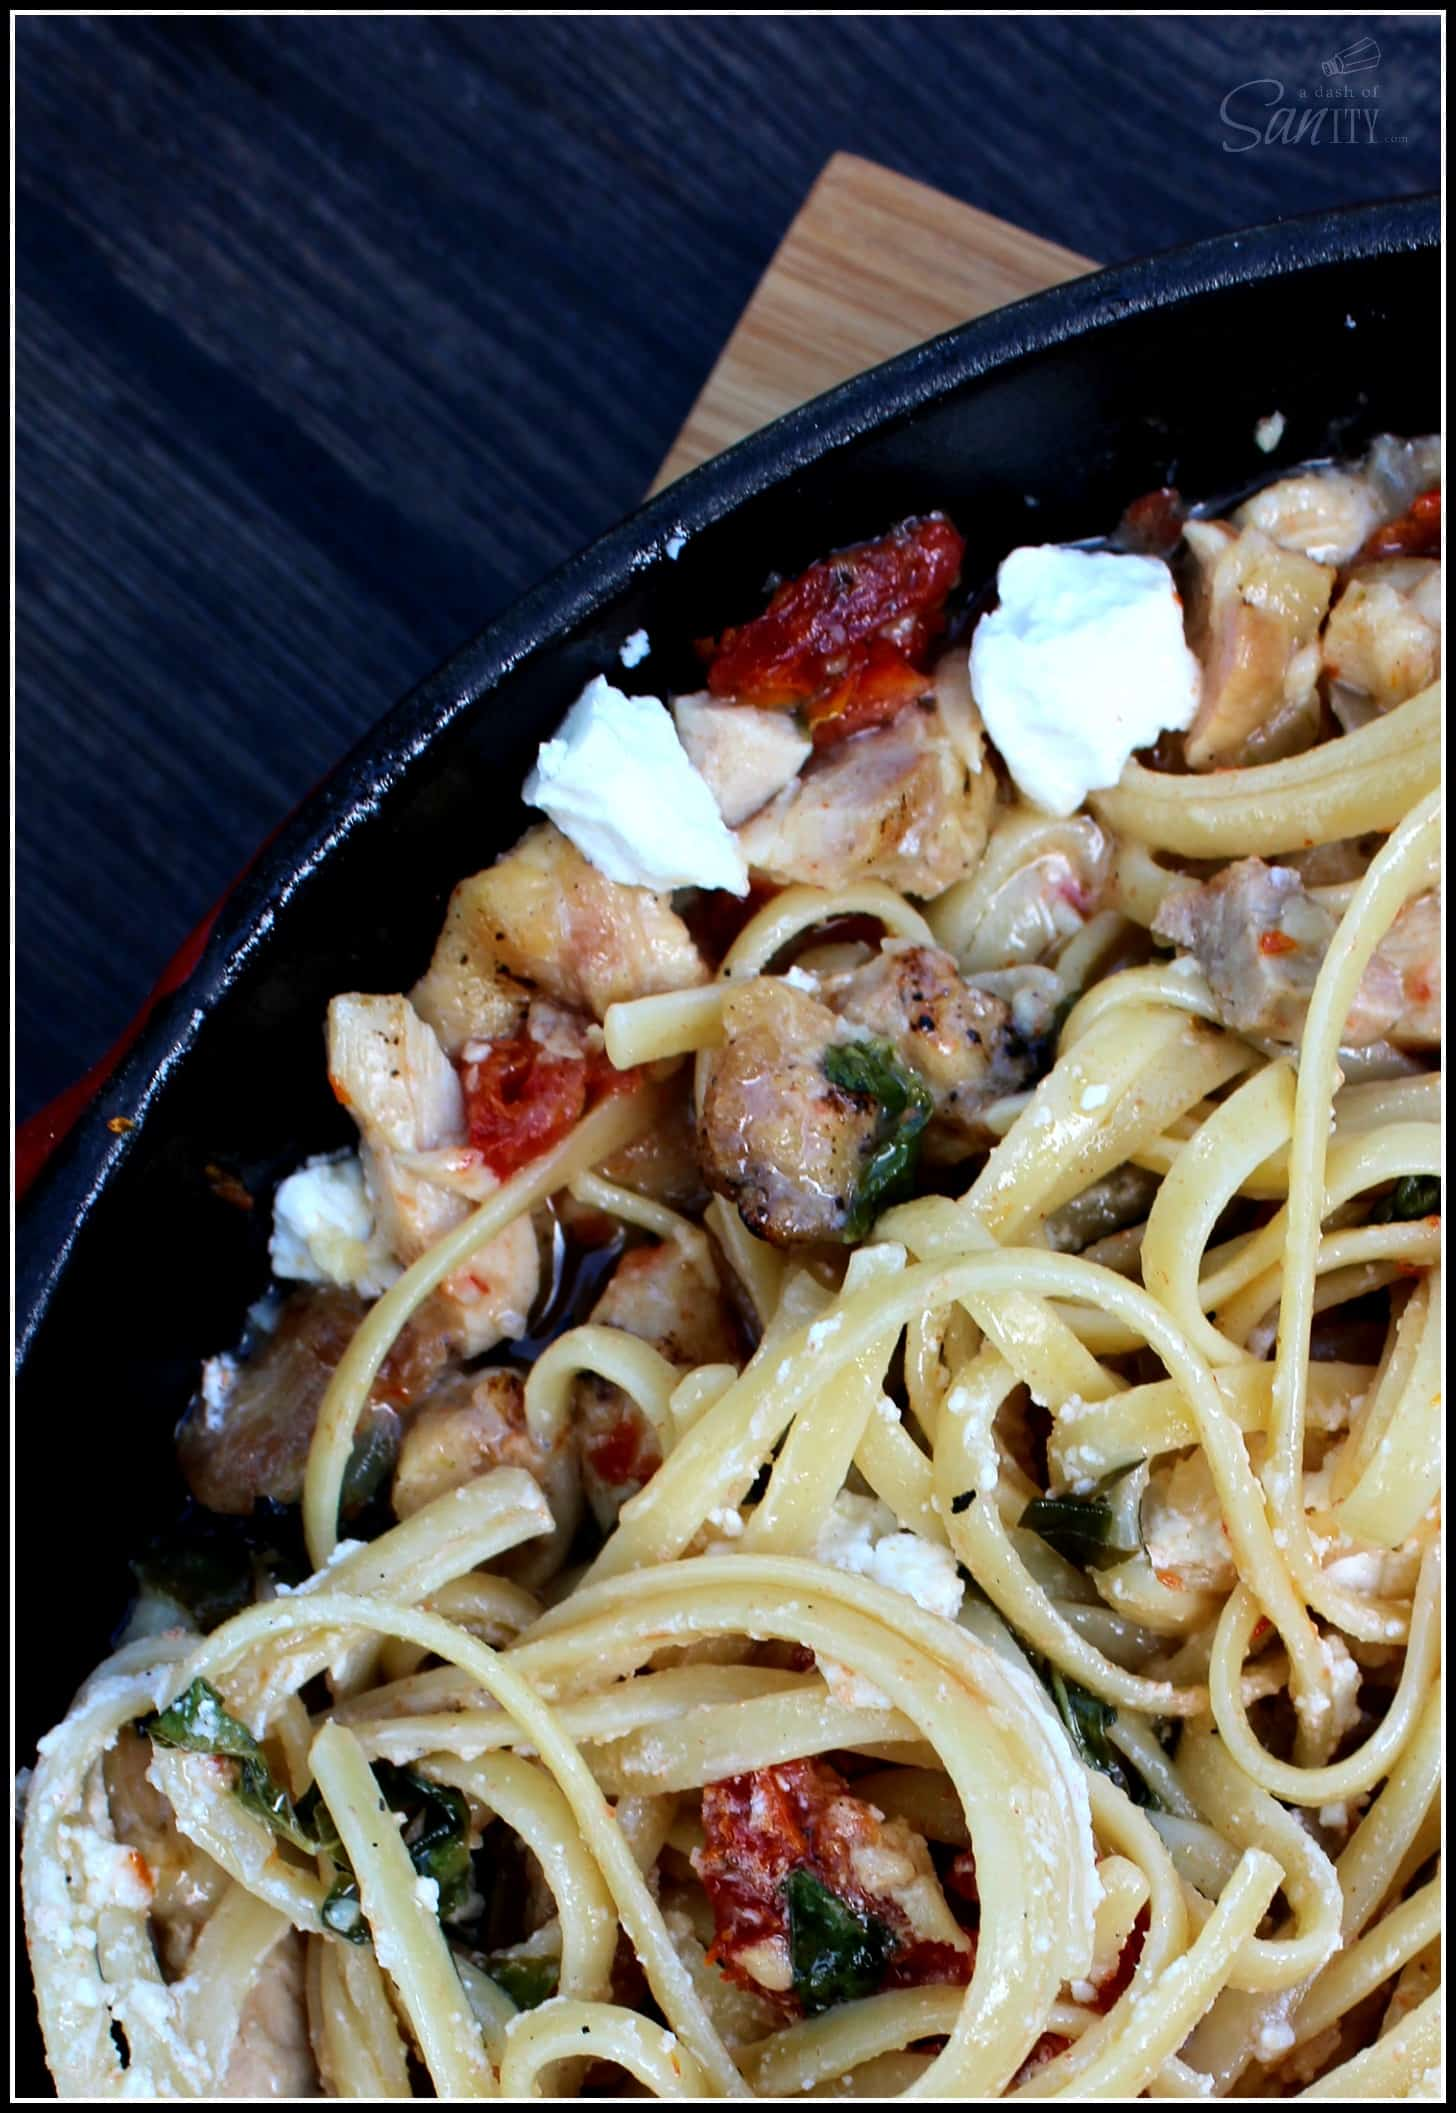 Chicken Bryan Pasta Skillet is made with lemon butter sauce, chicken, sun-dried tomatoes, & goat cheese medallions. Easy to prepare in under 40 minutes.